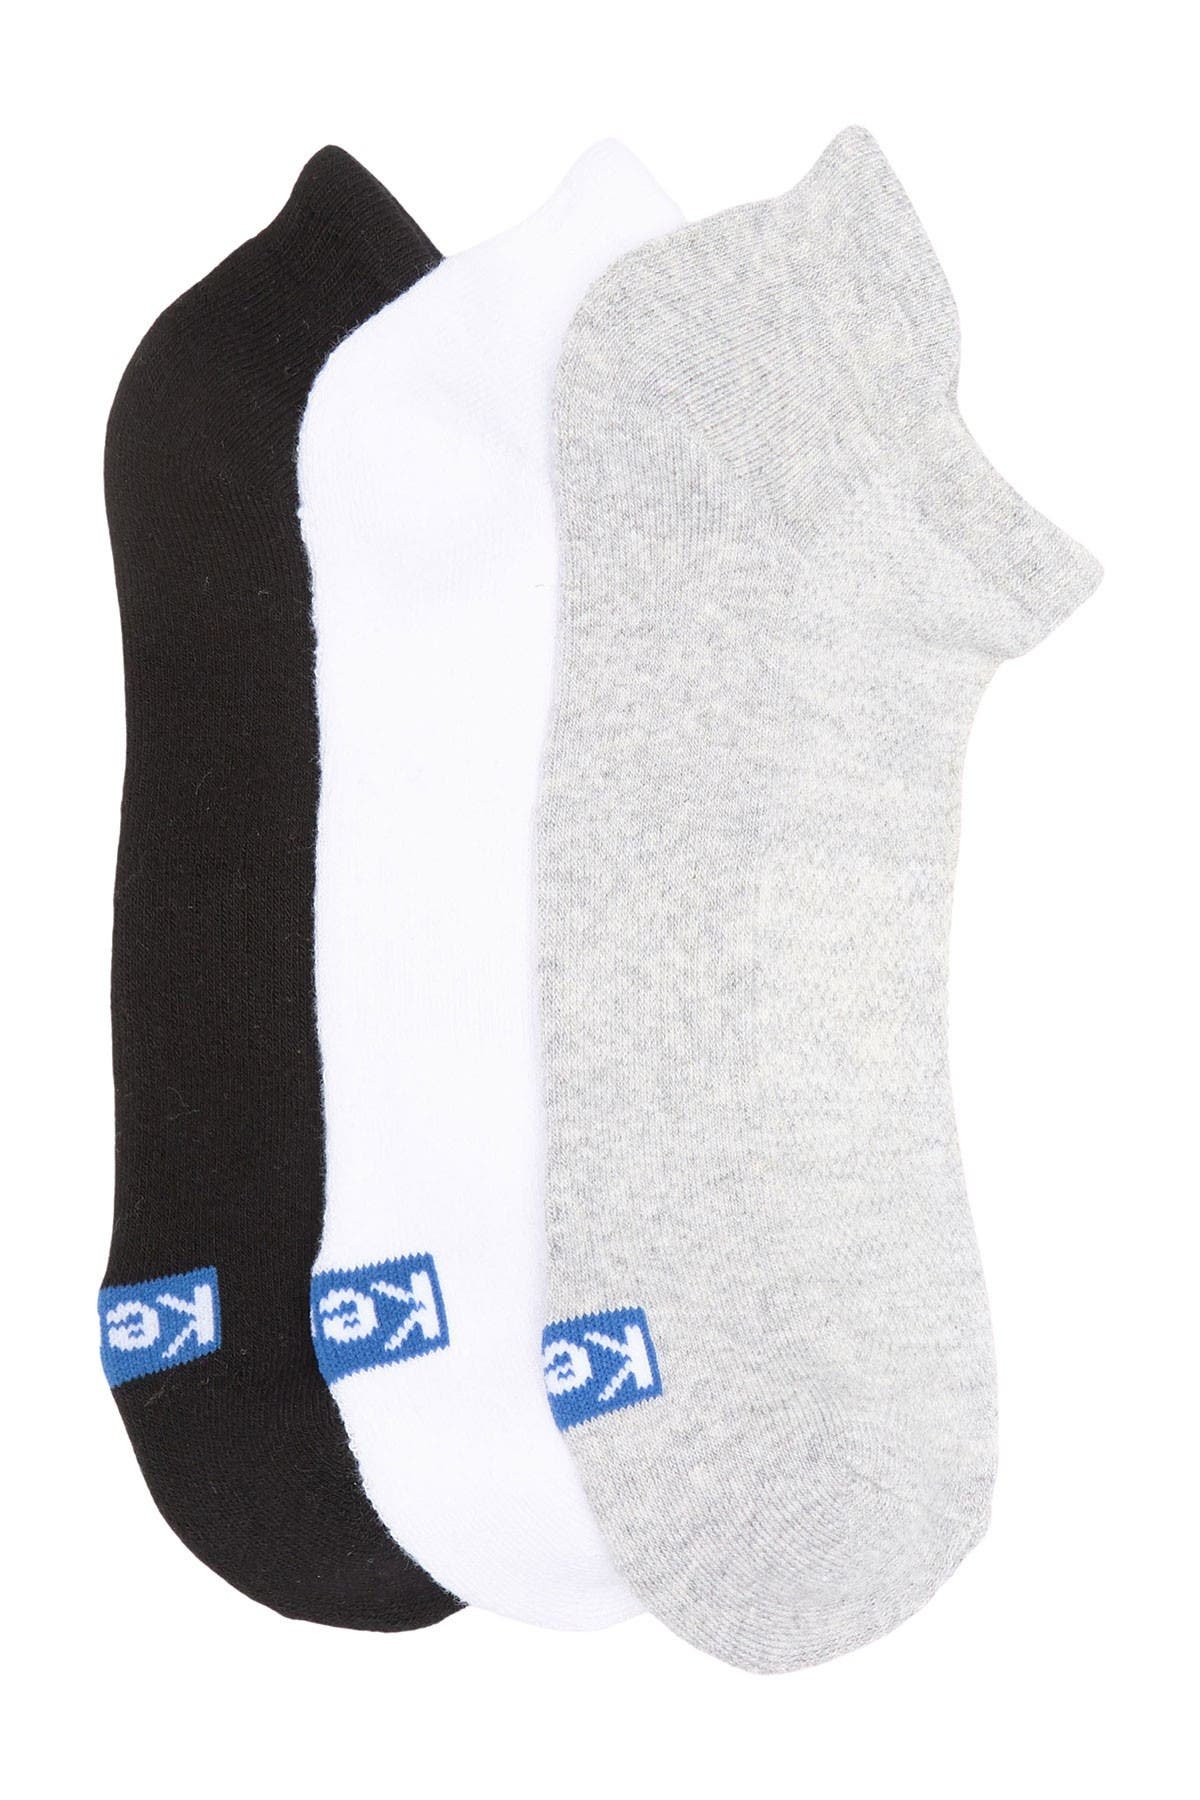 Image of Keds Extra Low Cut Ankle Socks - Pack of 3